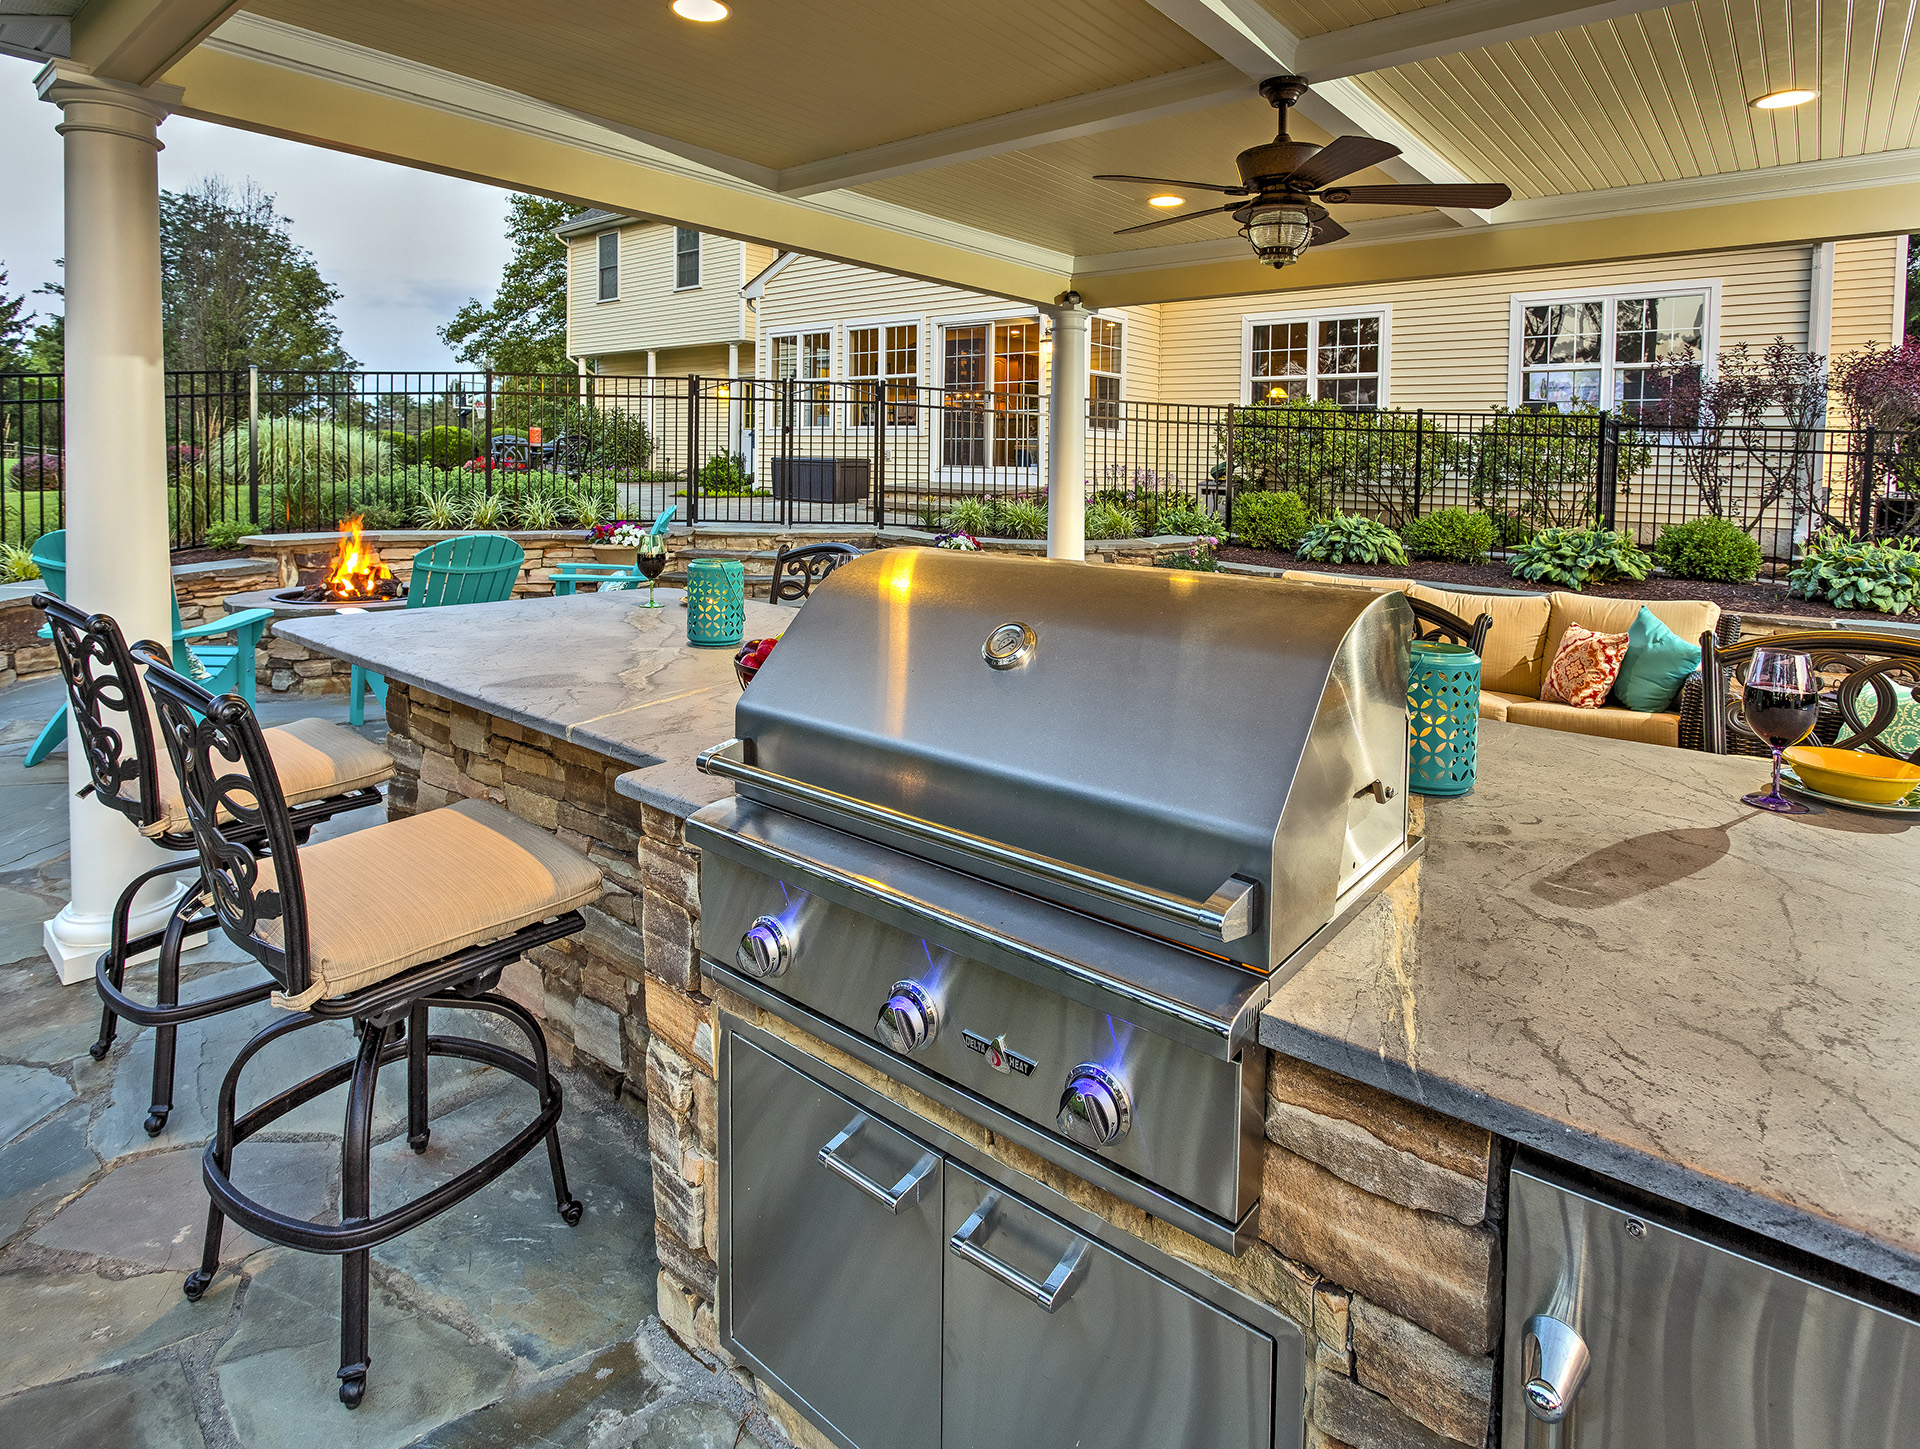 McCracken - Kennett Square, PA 19348 - Outdoor Kitchen by DiSabatino Landscaping & Esposito Masonry